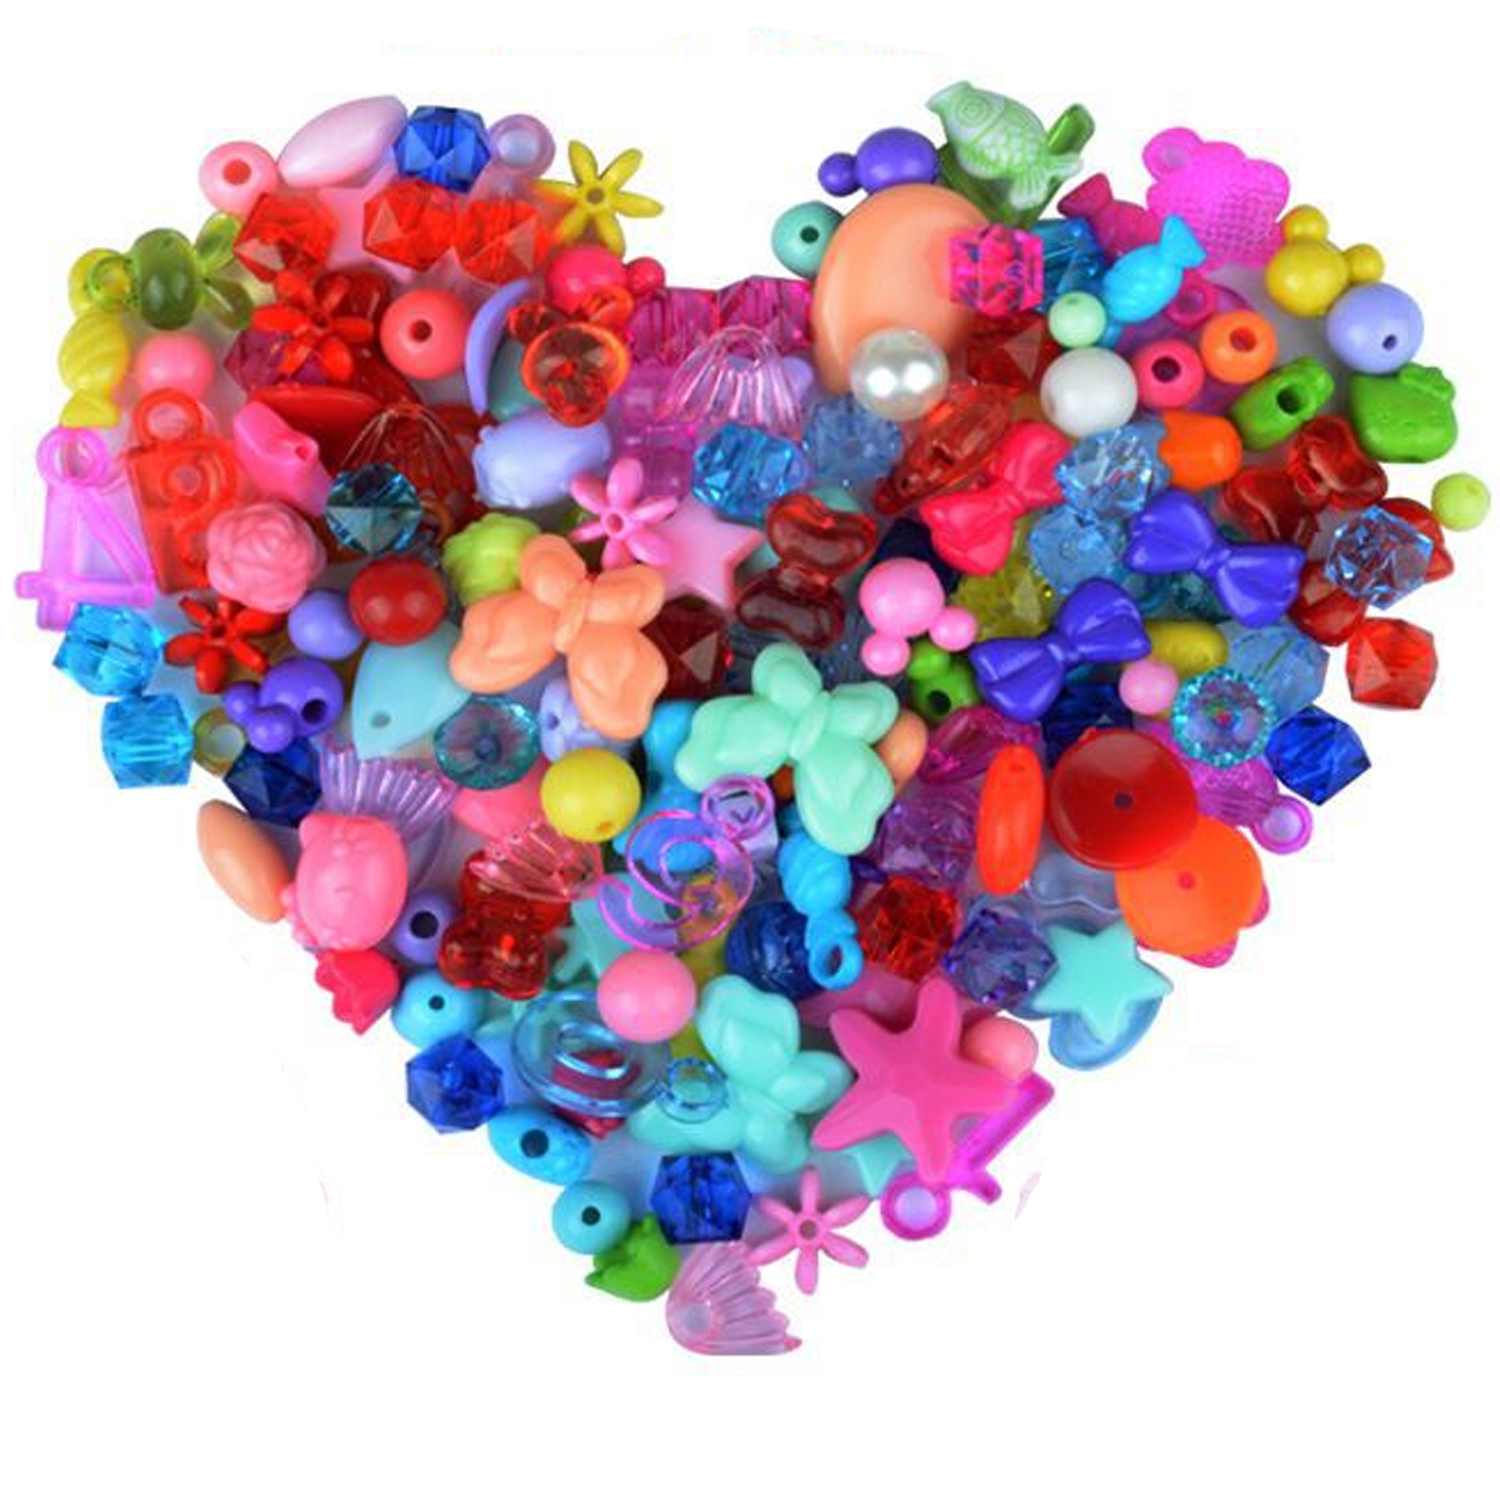 24 Grids Colorful Acrylic Beads With Stringing Threads Hair Hoop DIY Tools Set Handmade Woven Bracelet Children Educational Toys